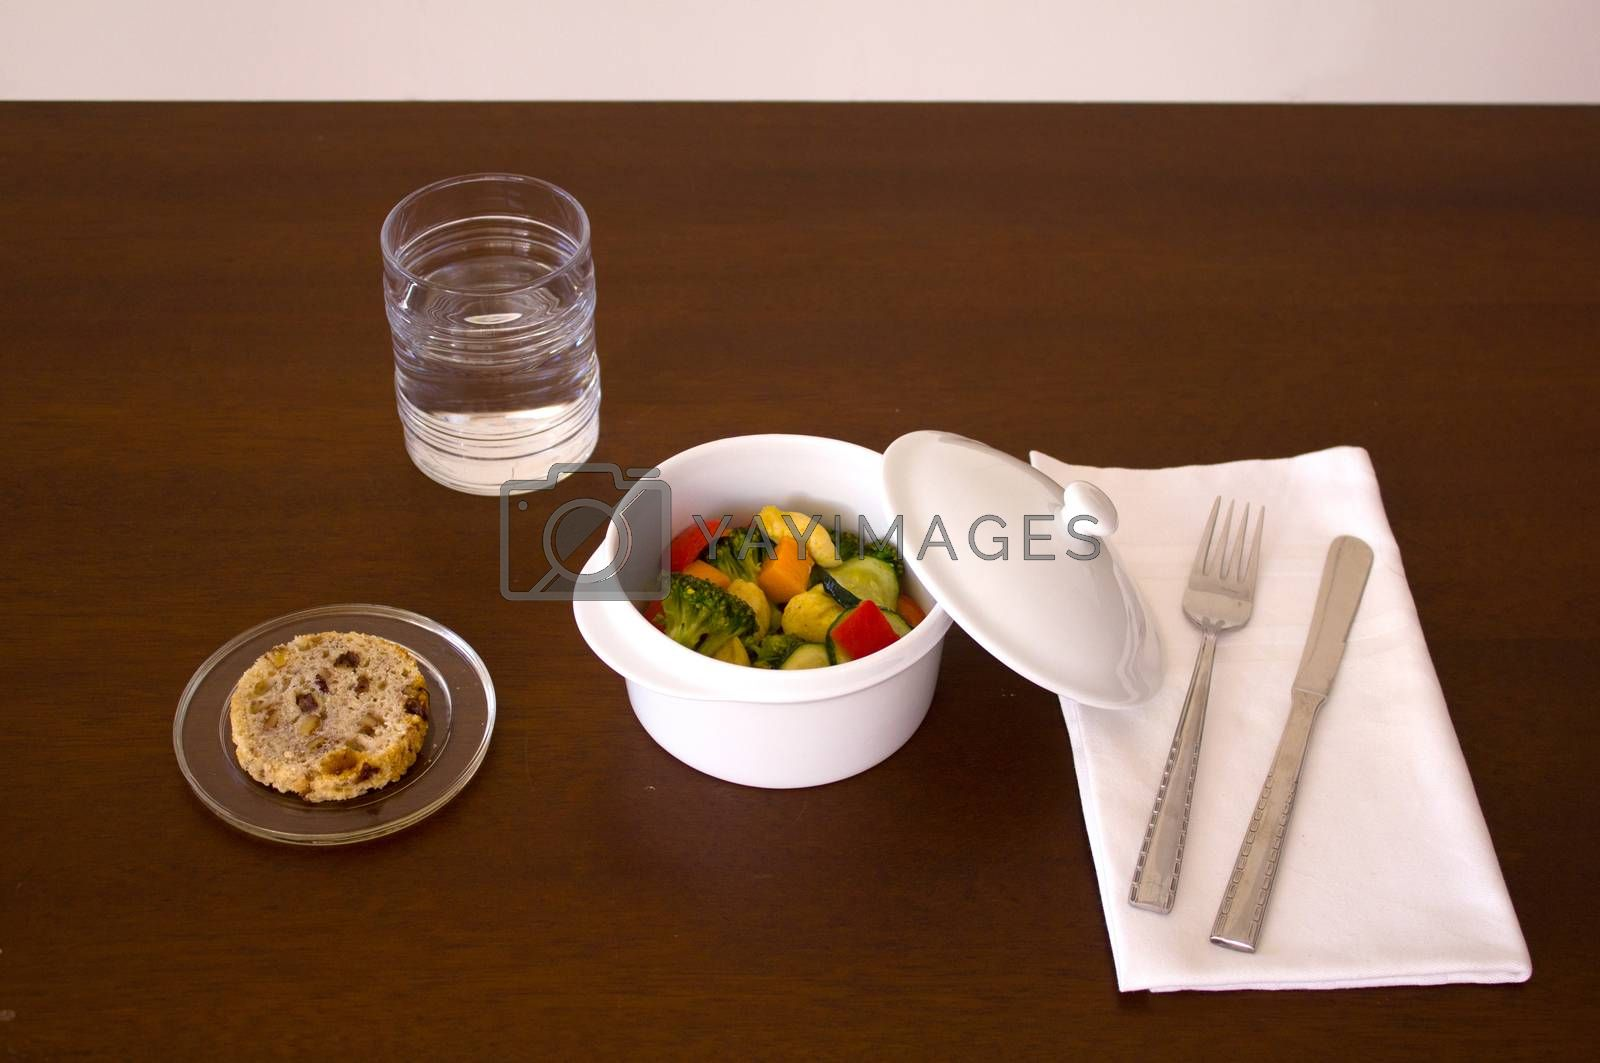 Main course dish, chicken with vegetables, bread, water knife, fork and towel